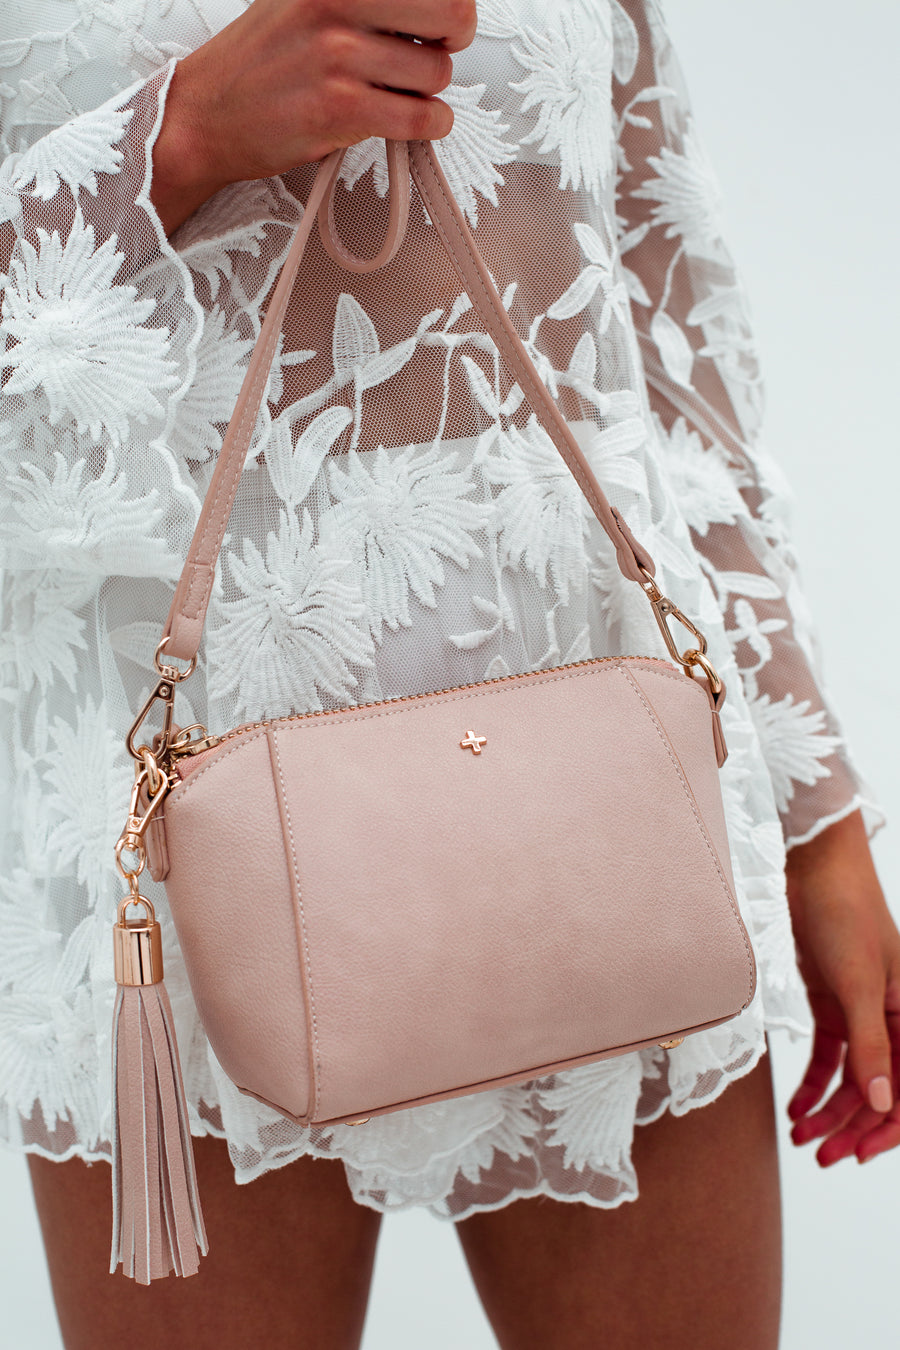 Giselle Bag in Pastel Pink - HER Empire Fashion Boutique Terrigal & Online